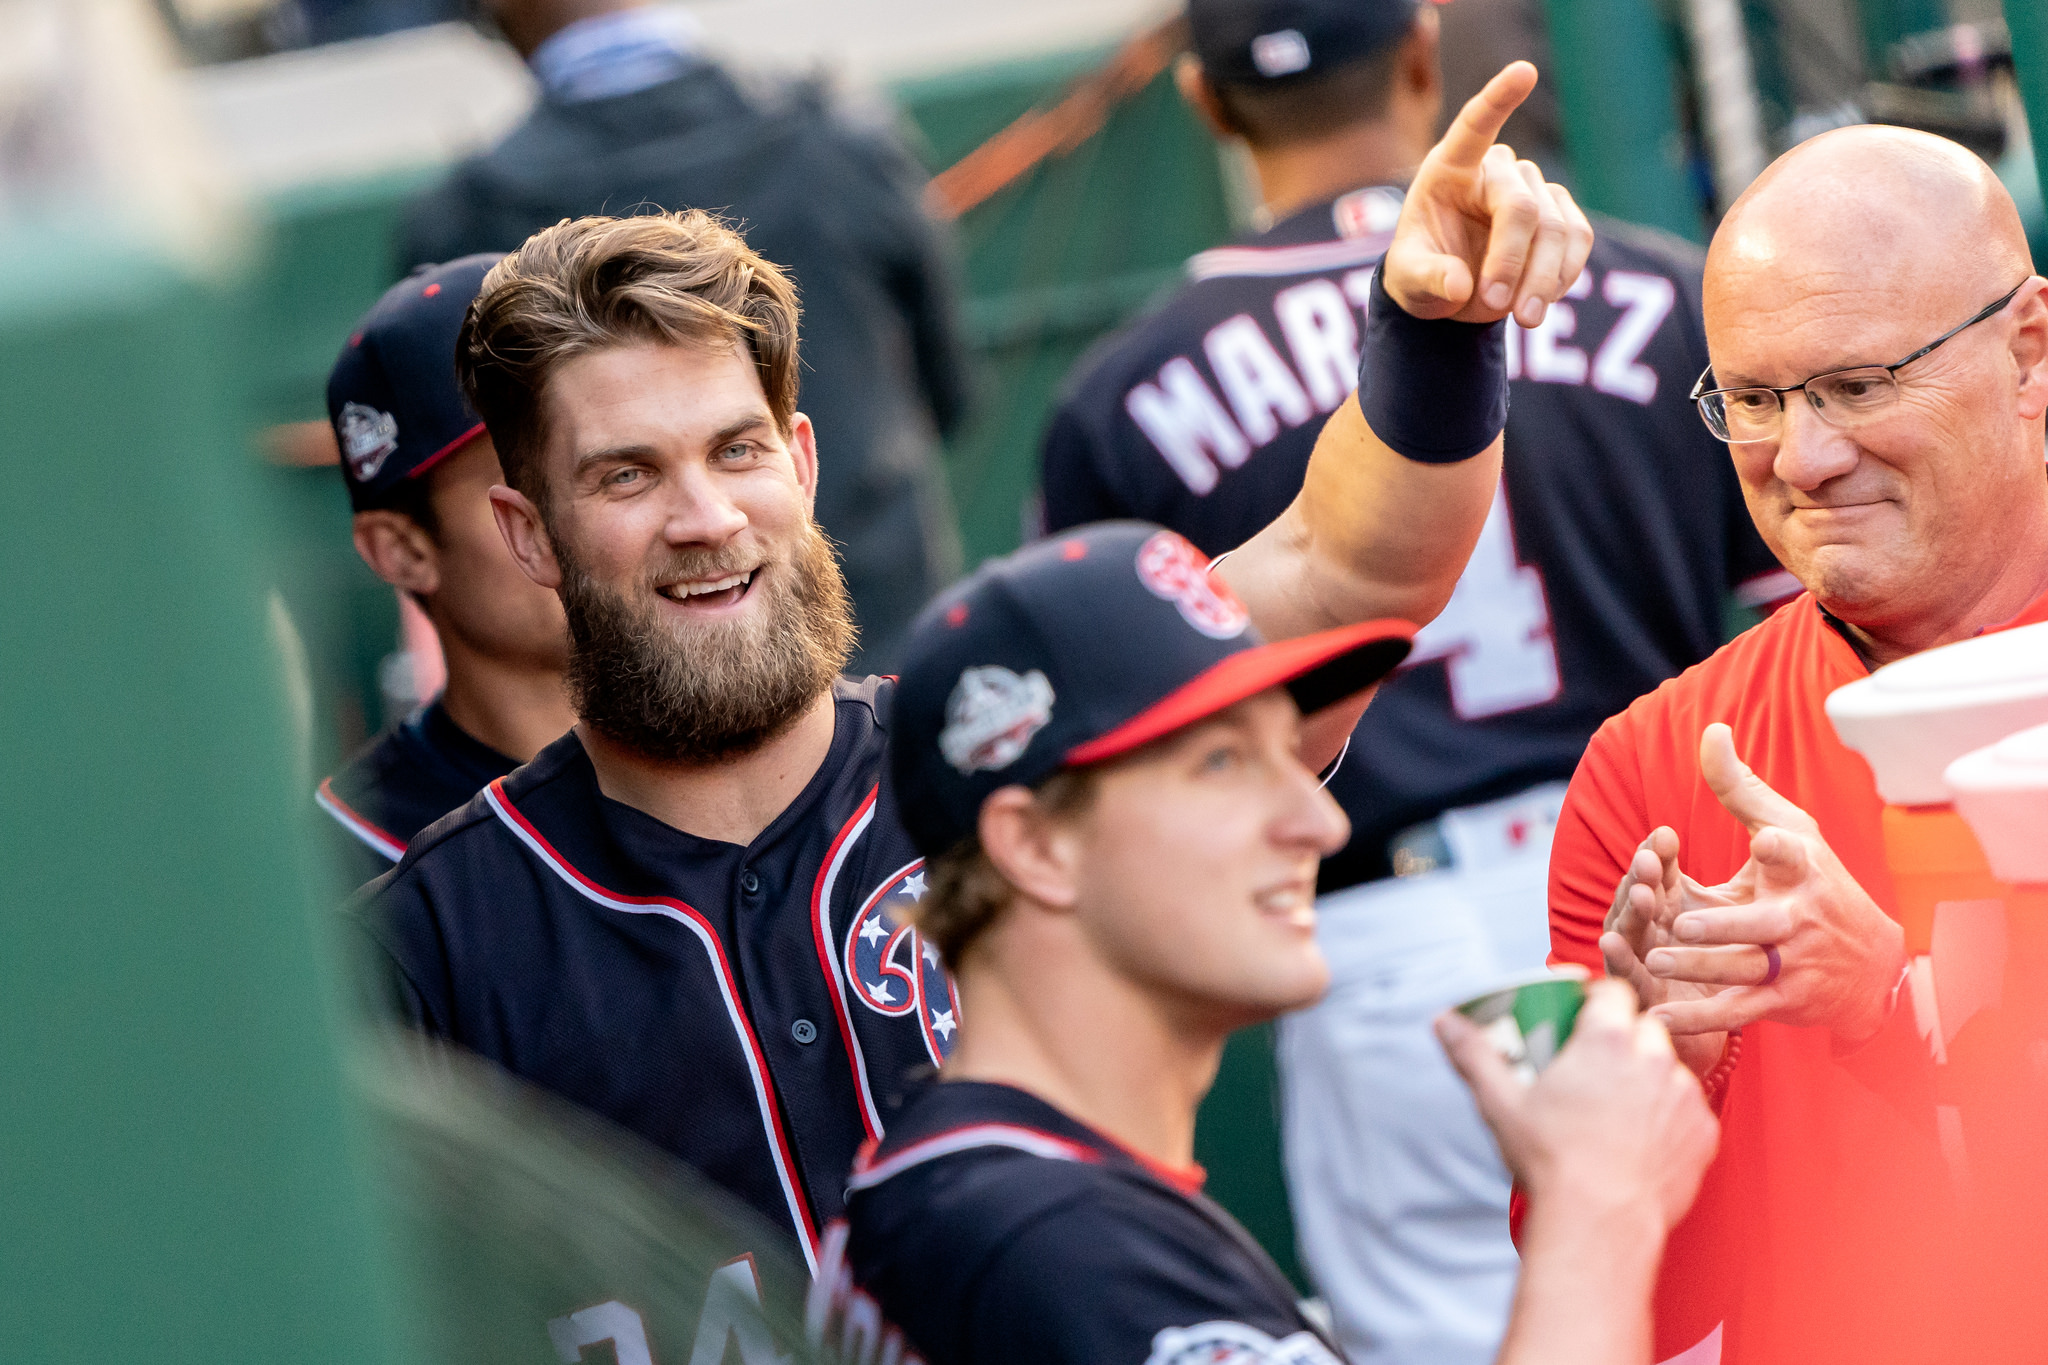 Bryce Harper points to the scoreboard from the dugout when Andrew Stevenson is announced at the beginning of the game, Washington Nationals Park